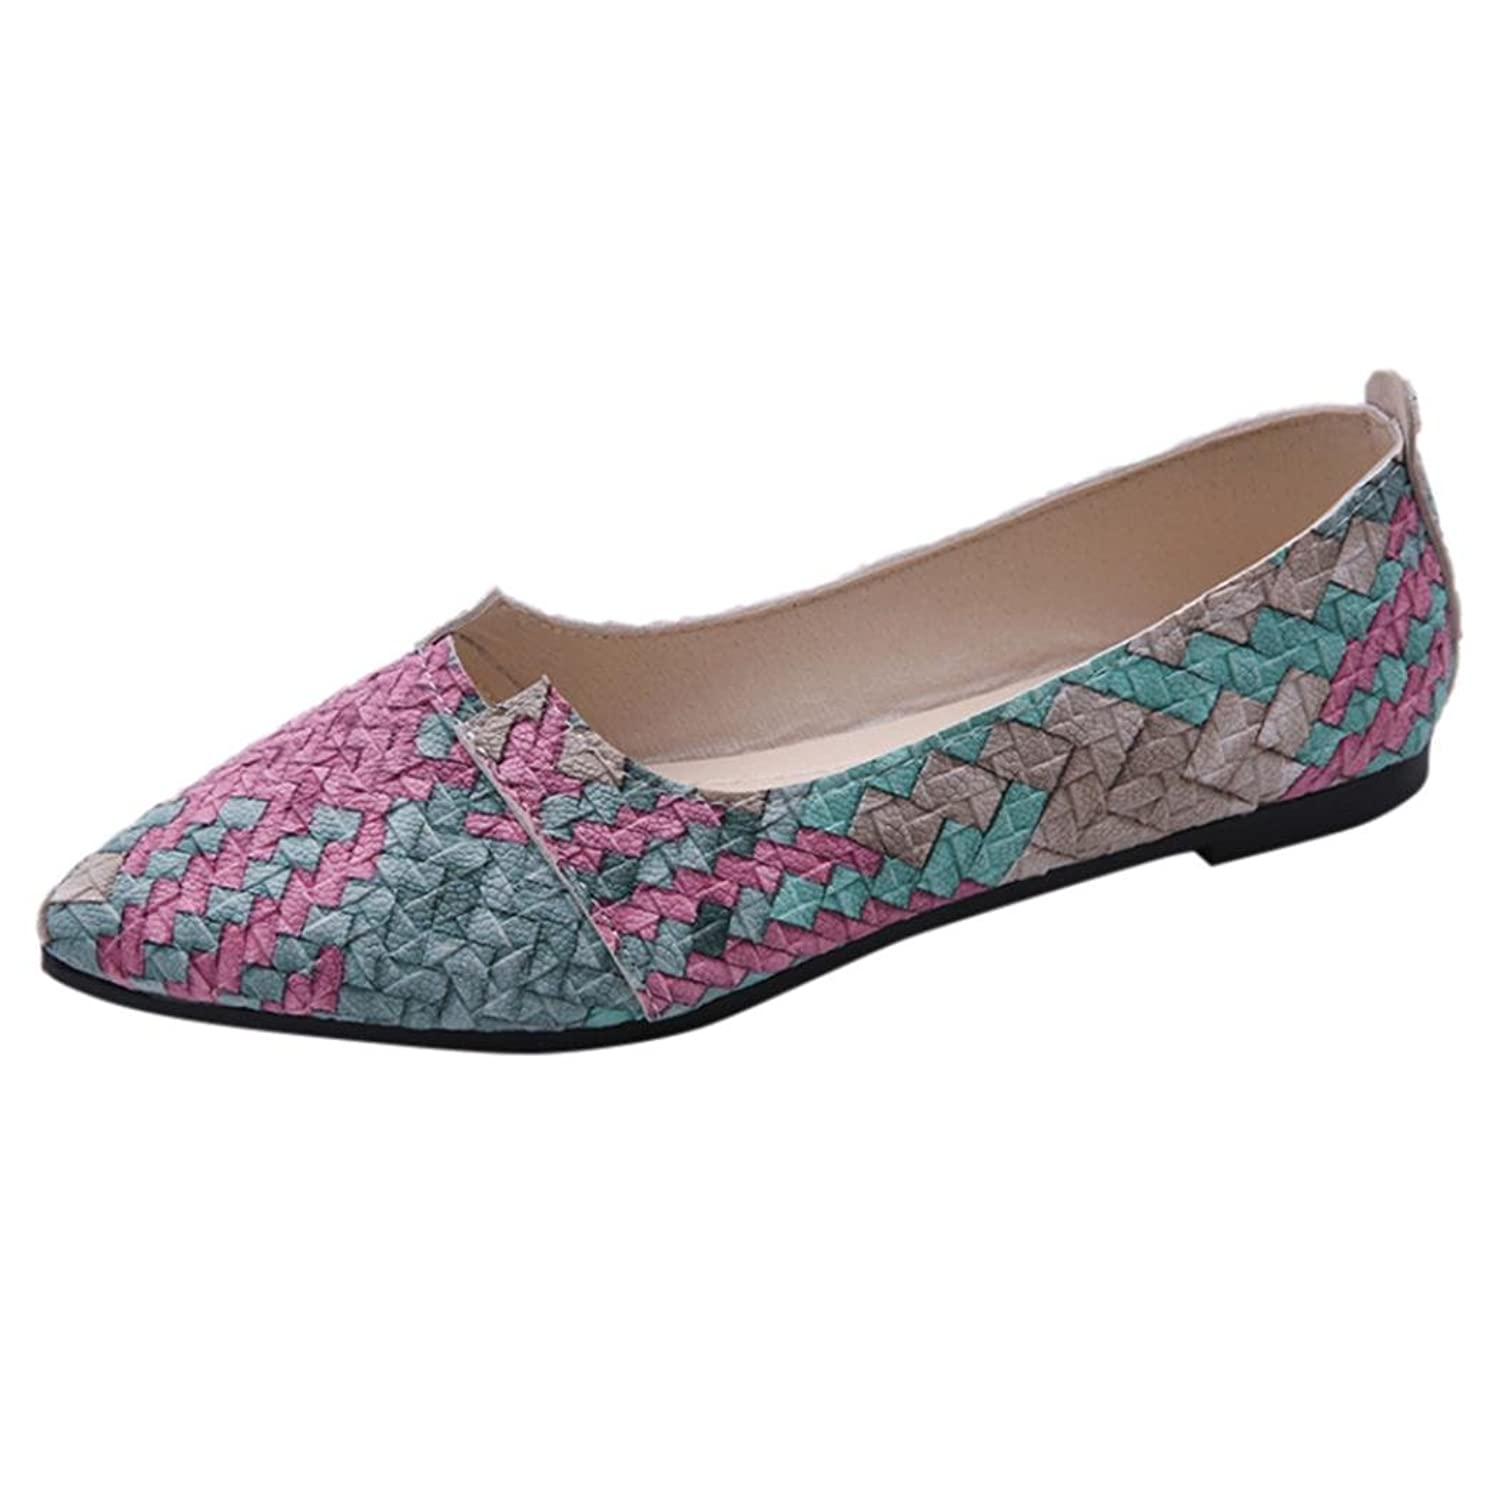 3d8ae491343 Sikye Women Flat Shoes Plaid Balle Slip on Casual Work Shopping Walking  Flats Loafers